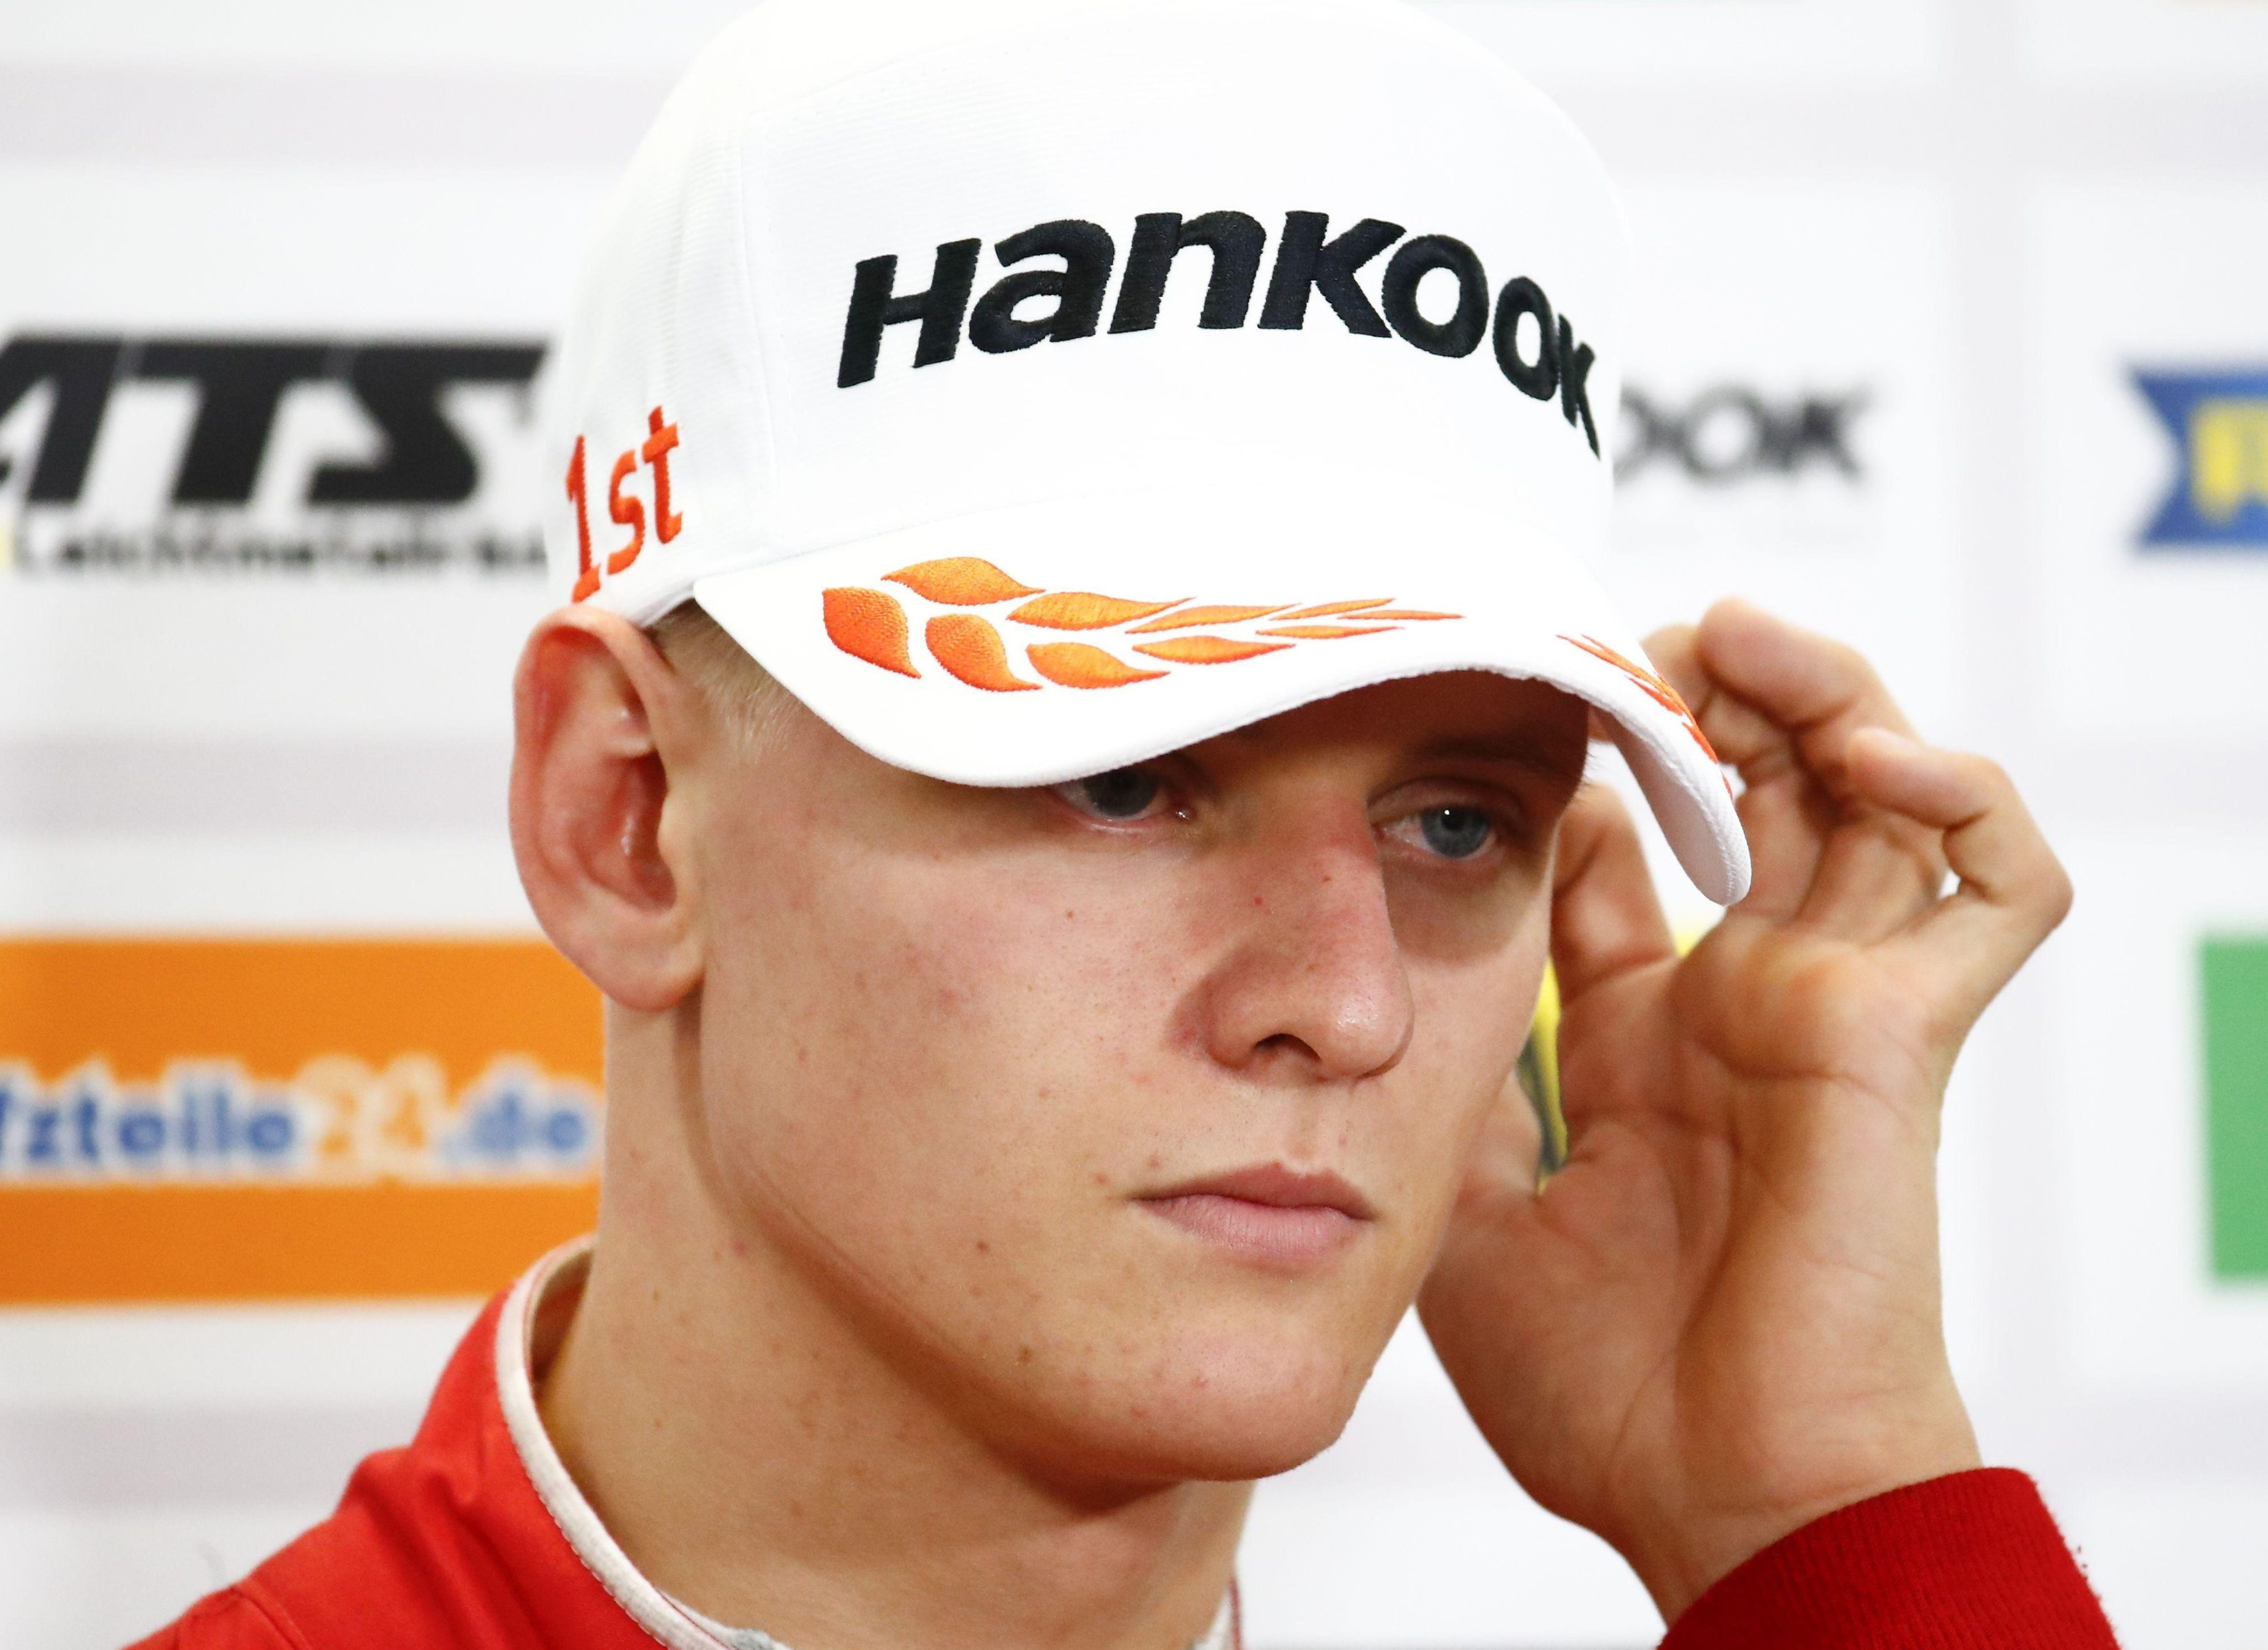 Mick Schumacher clinched the Formula Three European title with his eighth win of the season